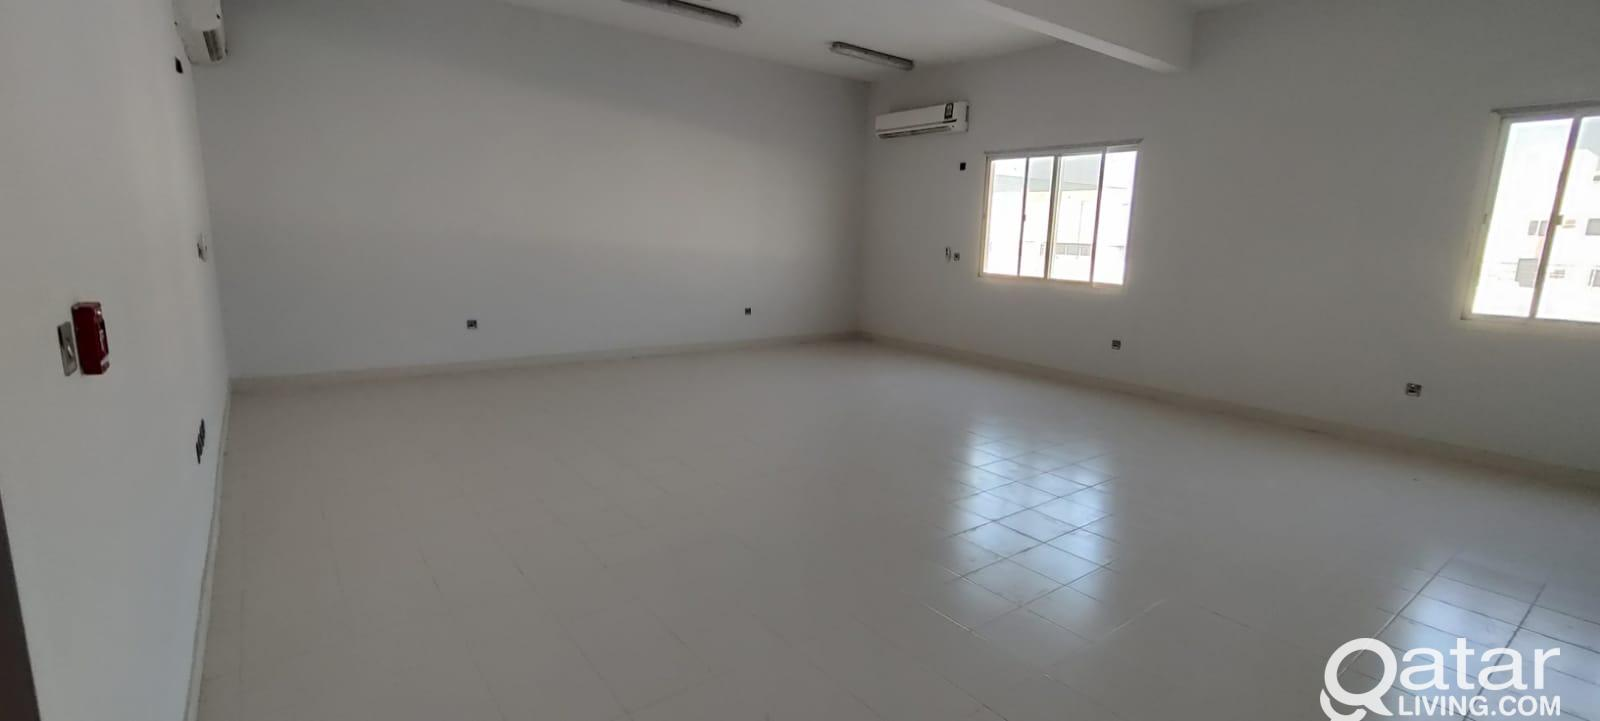 10000, 5000 sqmr Store for For Rent